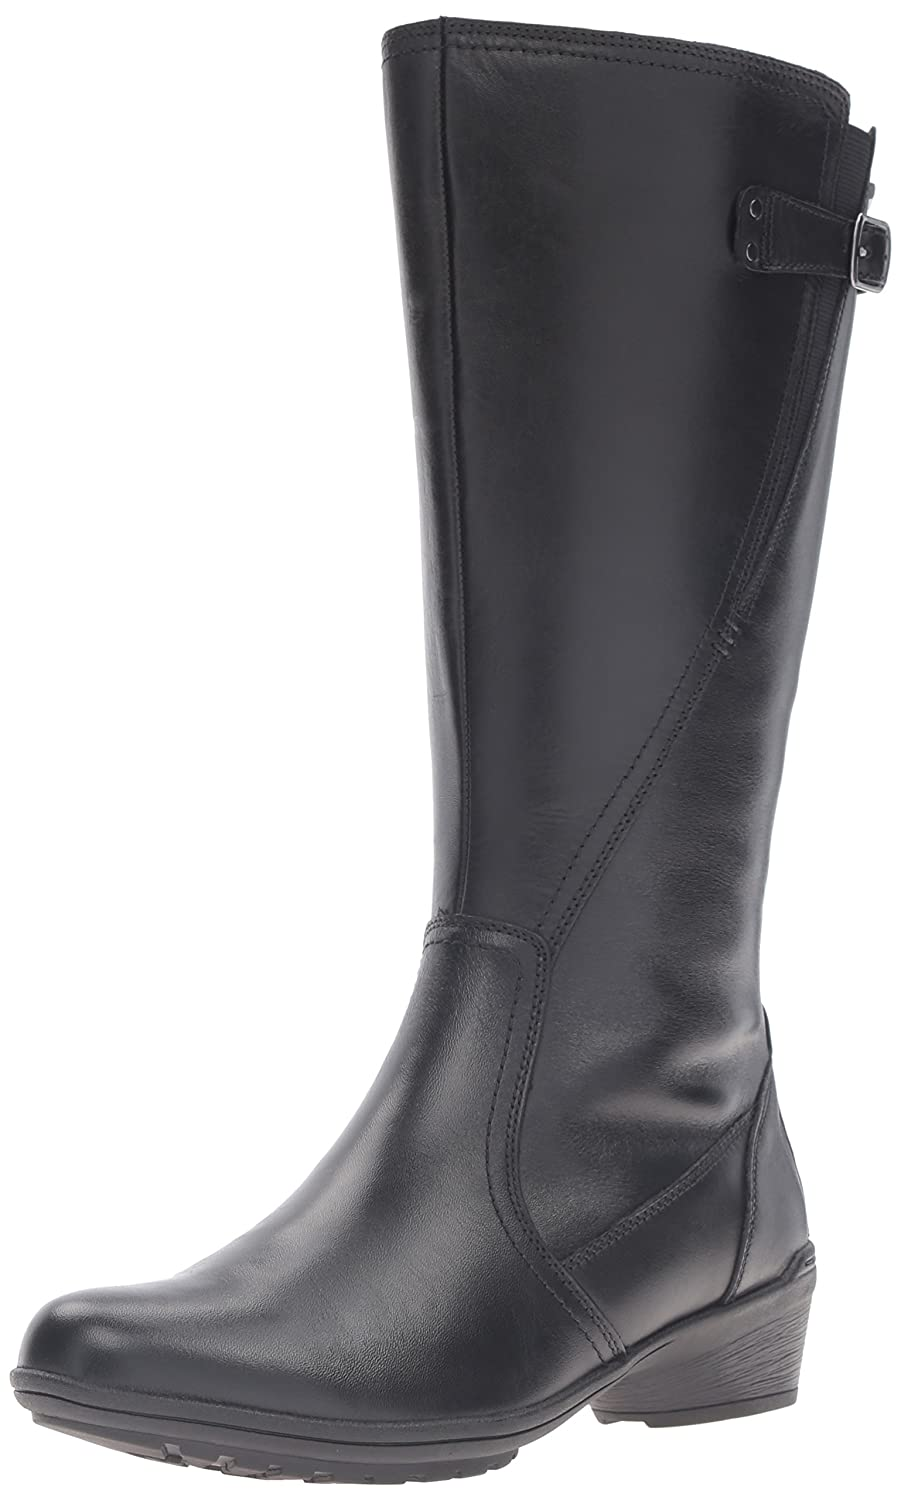 Cobb Hill Women's Rayna Wide Calf Rain Boot B01AKA75NO 6.5 W US|Black